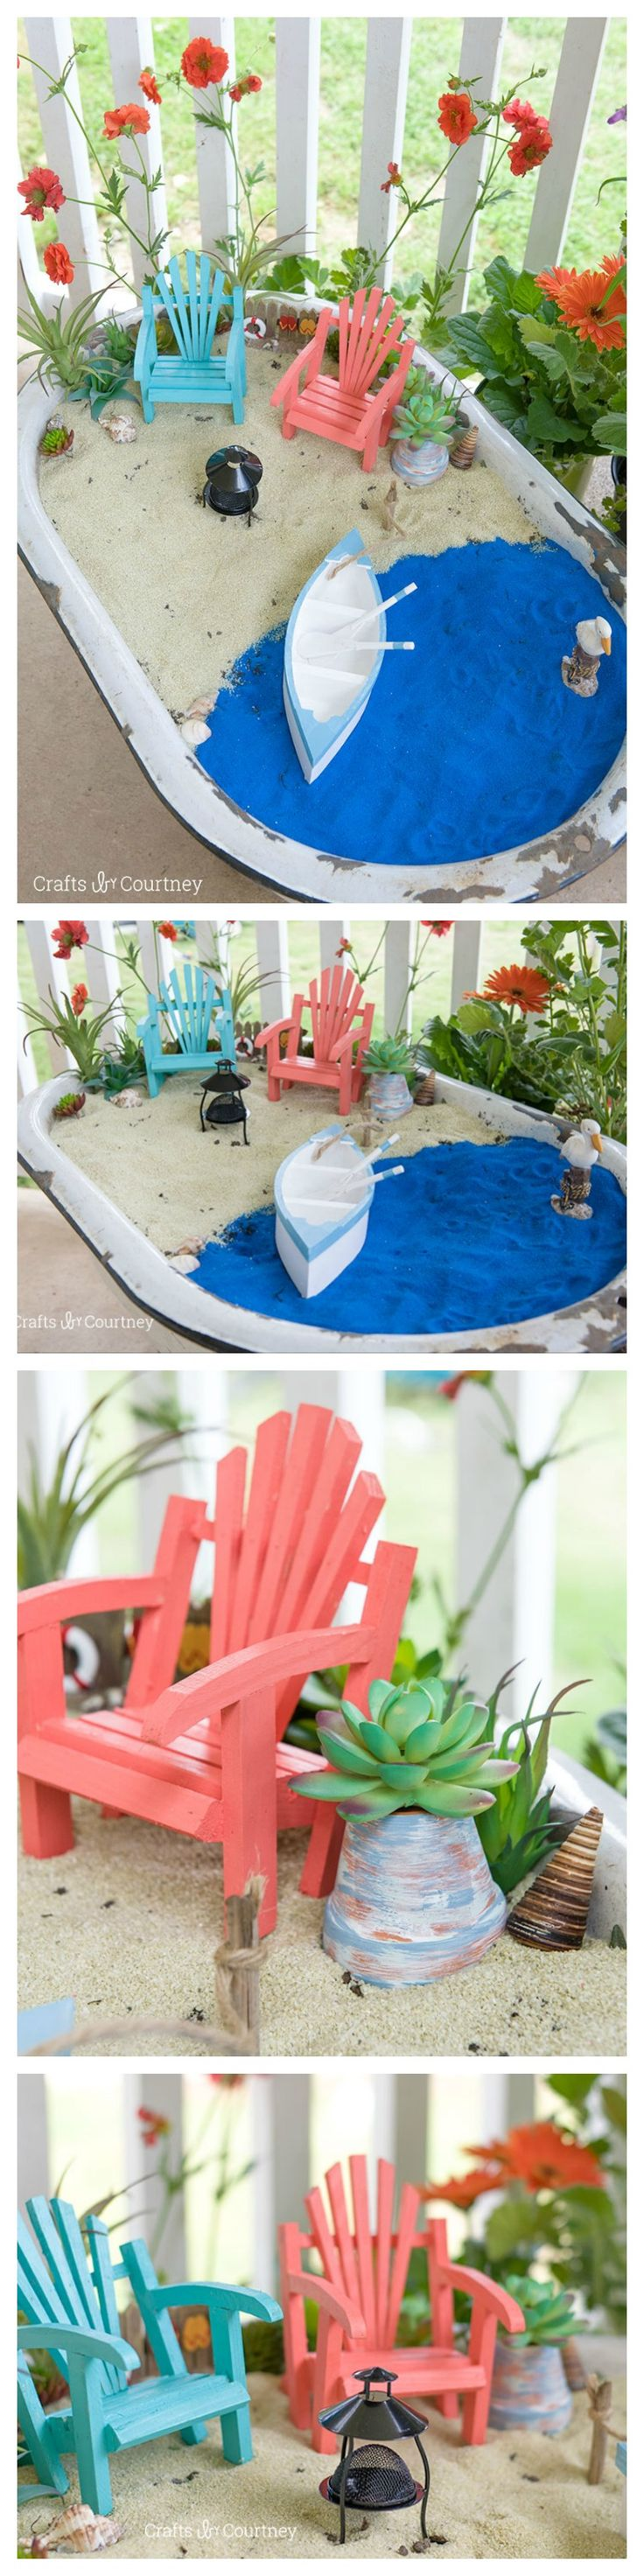 Create a DIY Fairy Garden this Summer with a coastal touch! I used some DecoArt patio paint to help create the perfect look for this fairy garden. Giving it a coastal feel was perfect for my style.